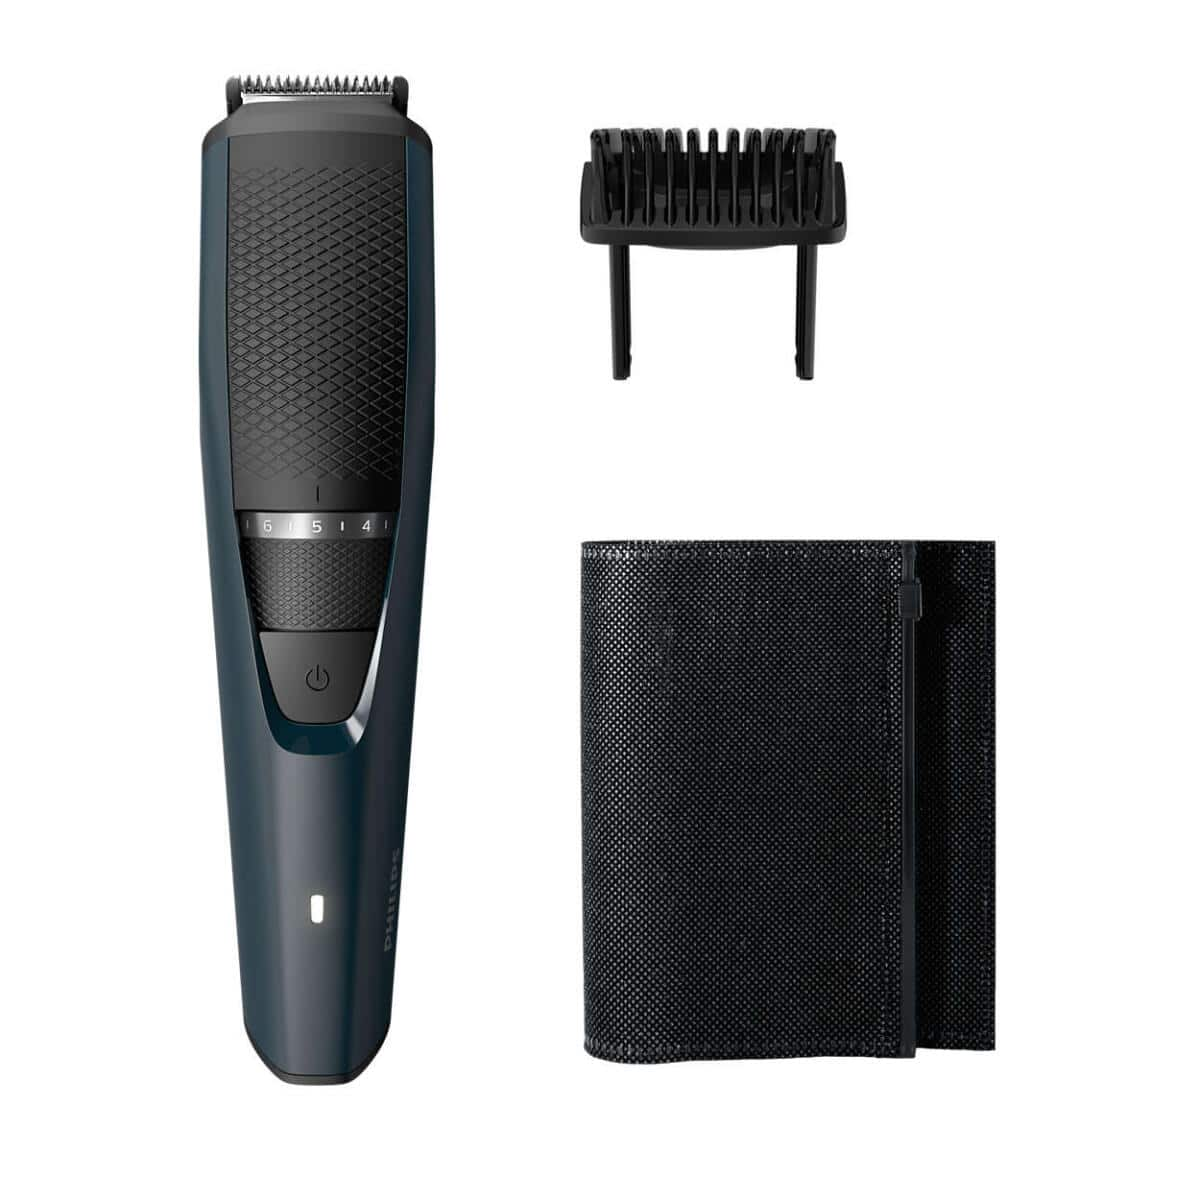 la tondeuse à barbe S3000 de Philips